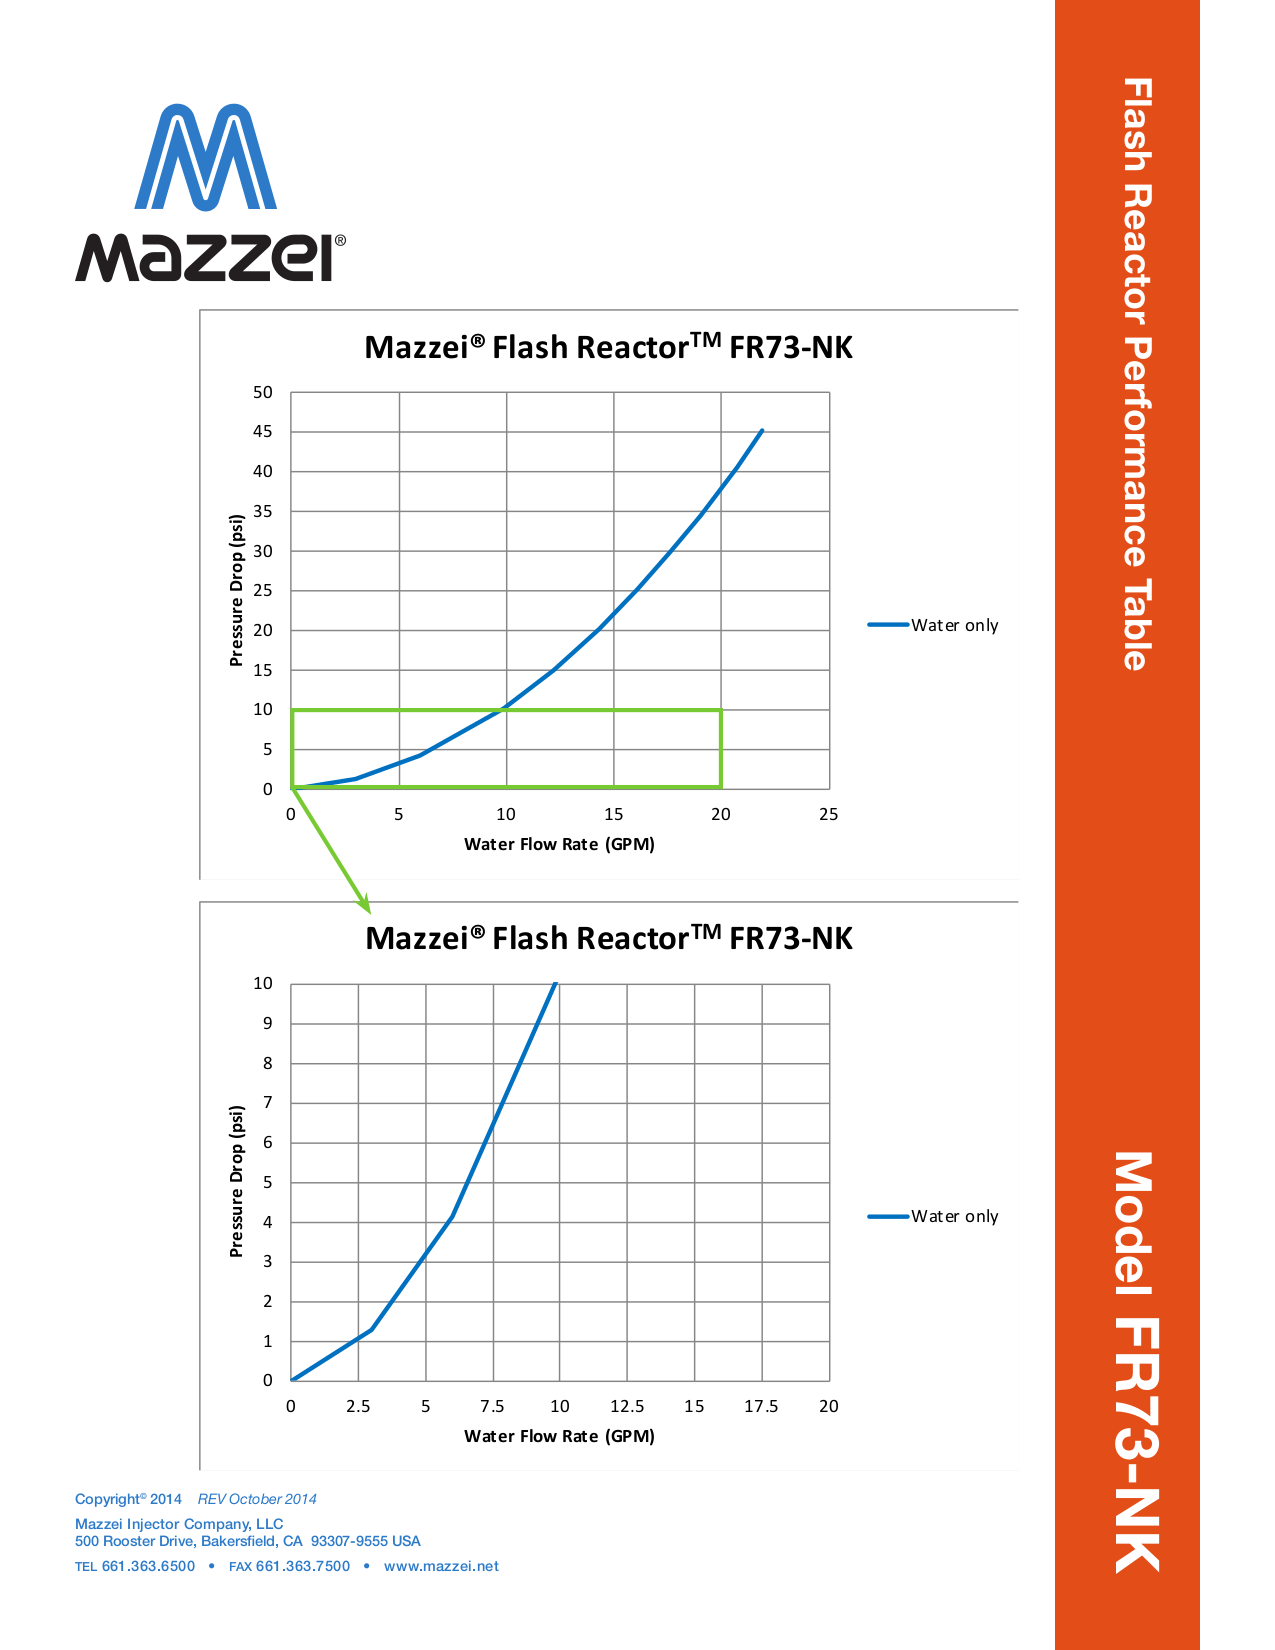 Performance Data for the FR-73-NK Flash Reactor